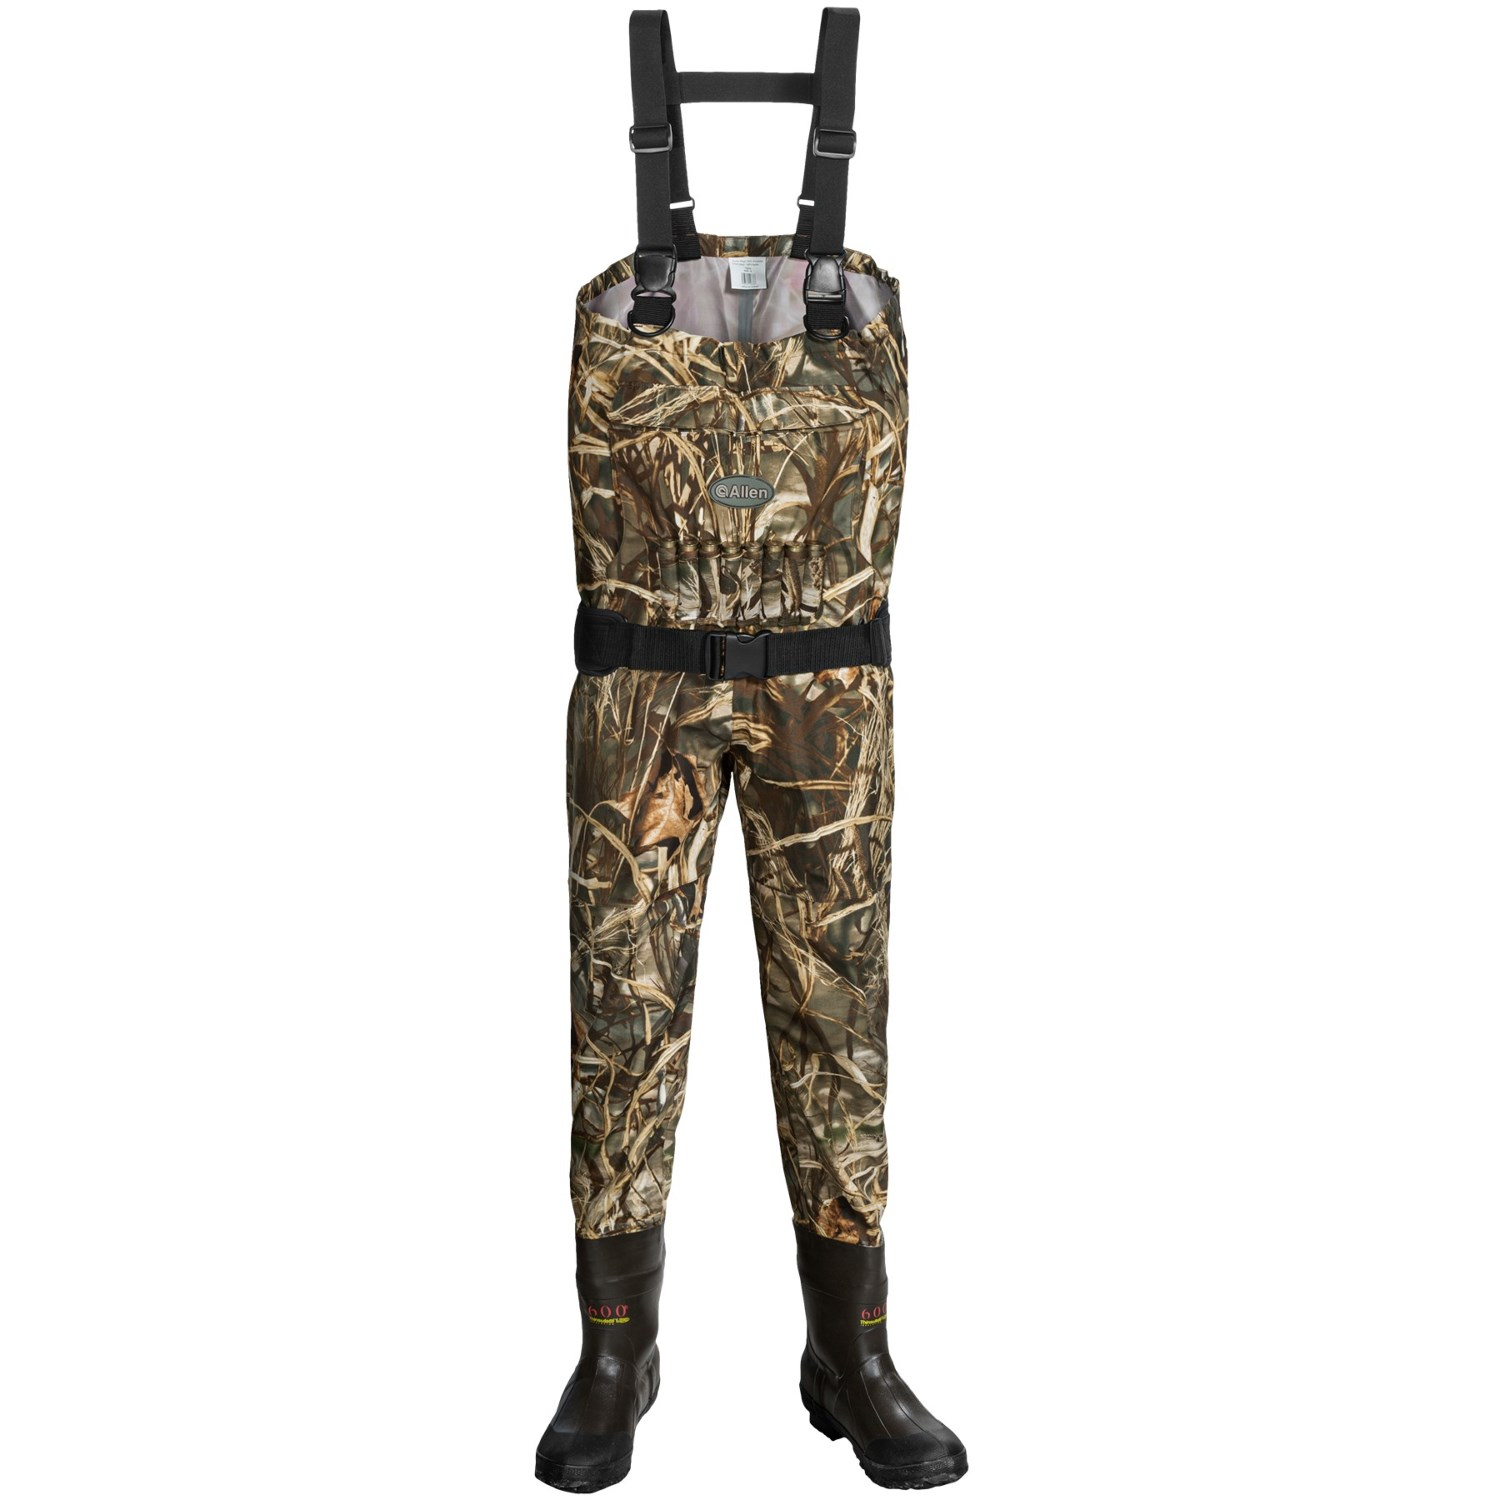 Allen co blue bill camo breathable waders insulated for Fishing waders reviews